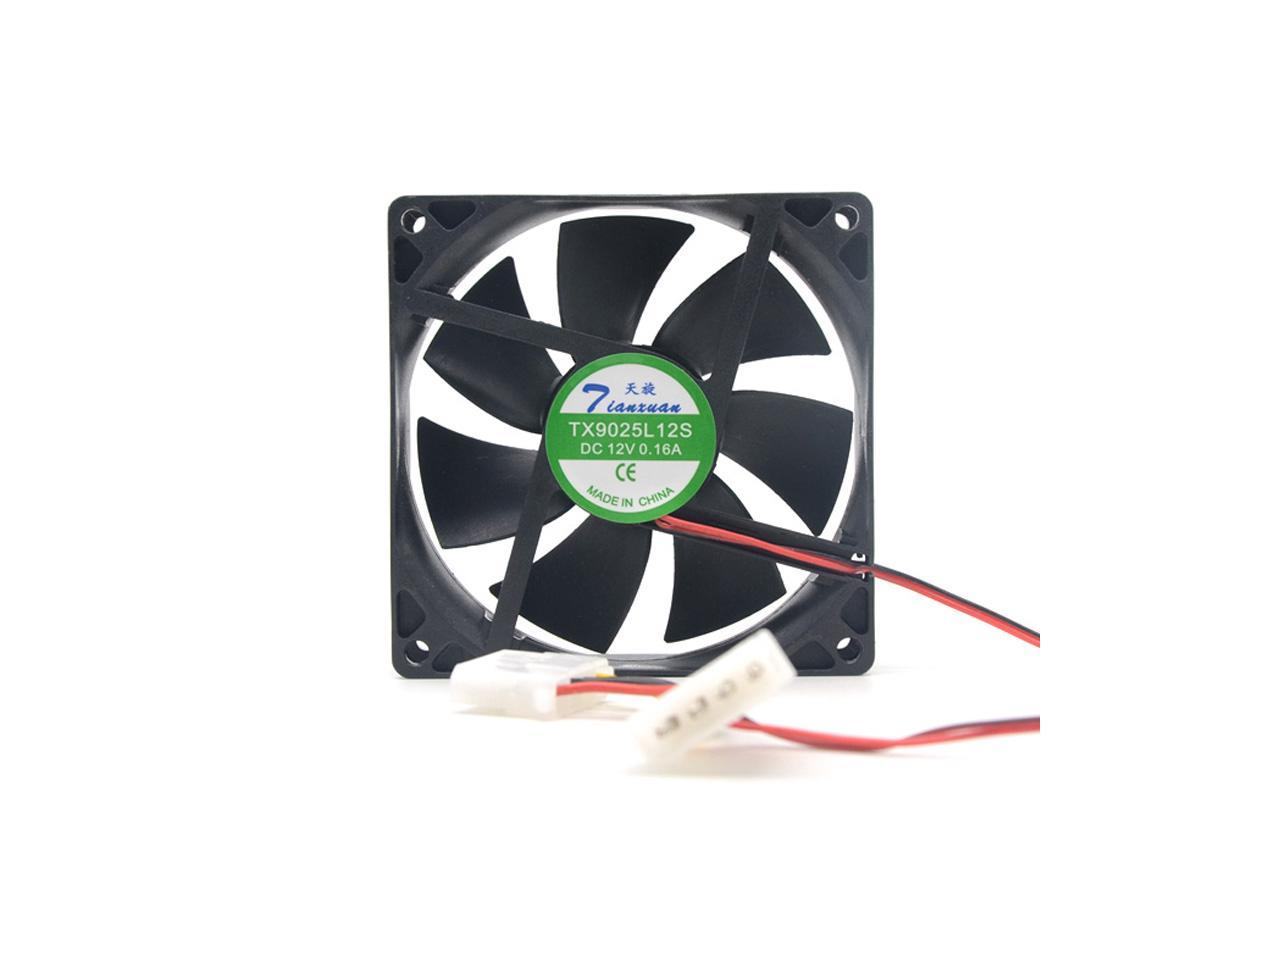 FOR TX9025L12S DC 12V 0.16A 90*90*25MM 9CM 2Pin Fan